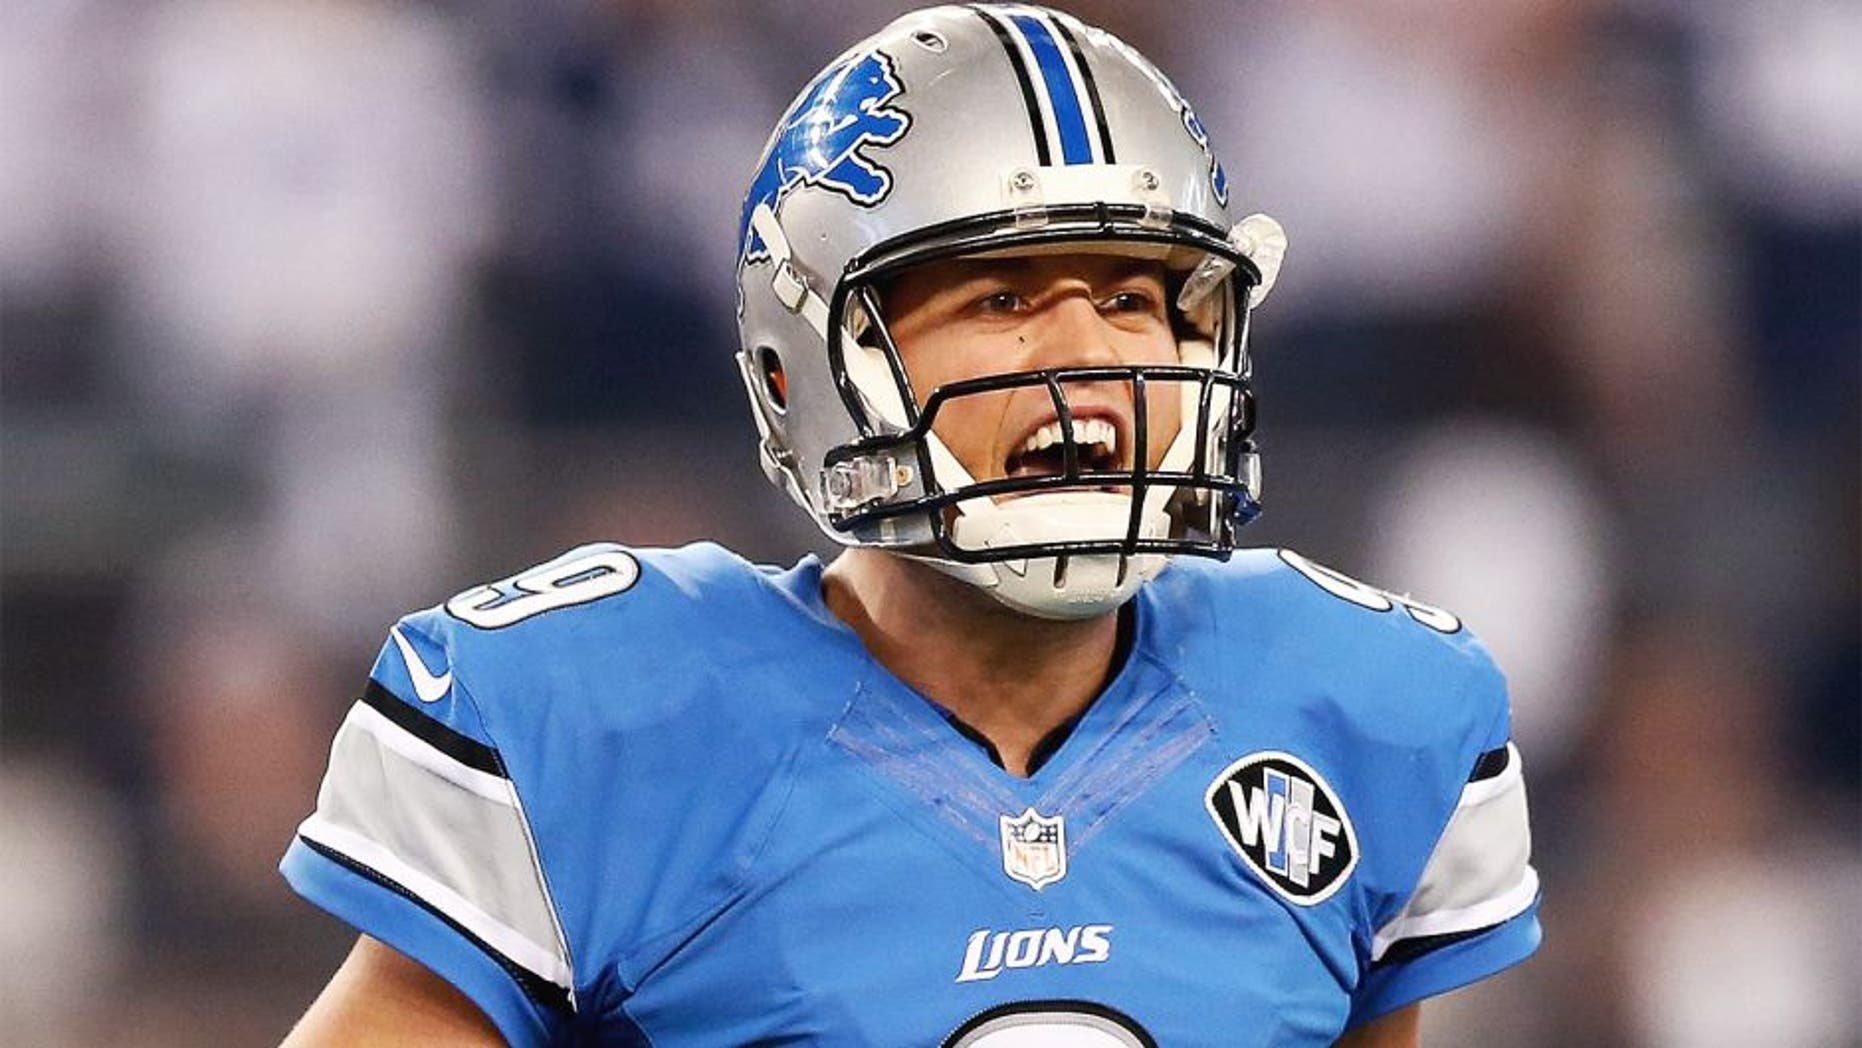 ARLINGTON, TX - JANUARY 04: Quarterback Matthew Stafford #9 of the Detroit Lions reacts in the first half while taking on the Dallas Cowboys during the NFC Wildcard Playoff Game at AT&T Stadium on January 4, 2015 in Arlington, Texas. (Photo by Ronald Martinez/Getty Images)